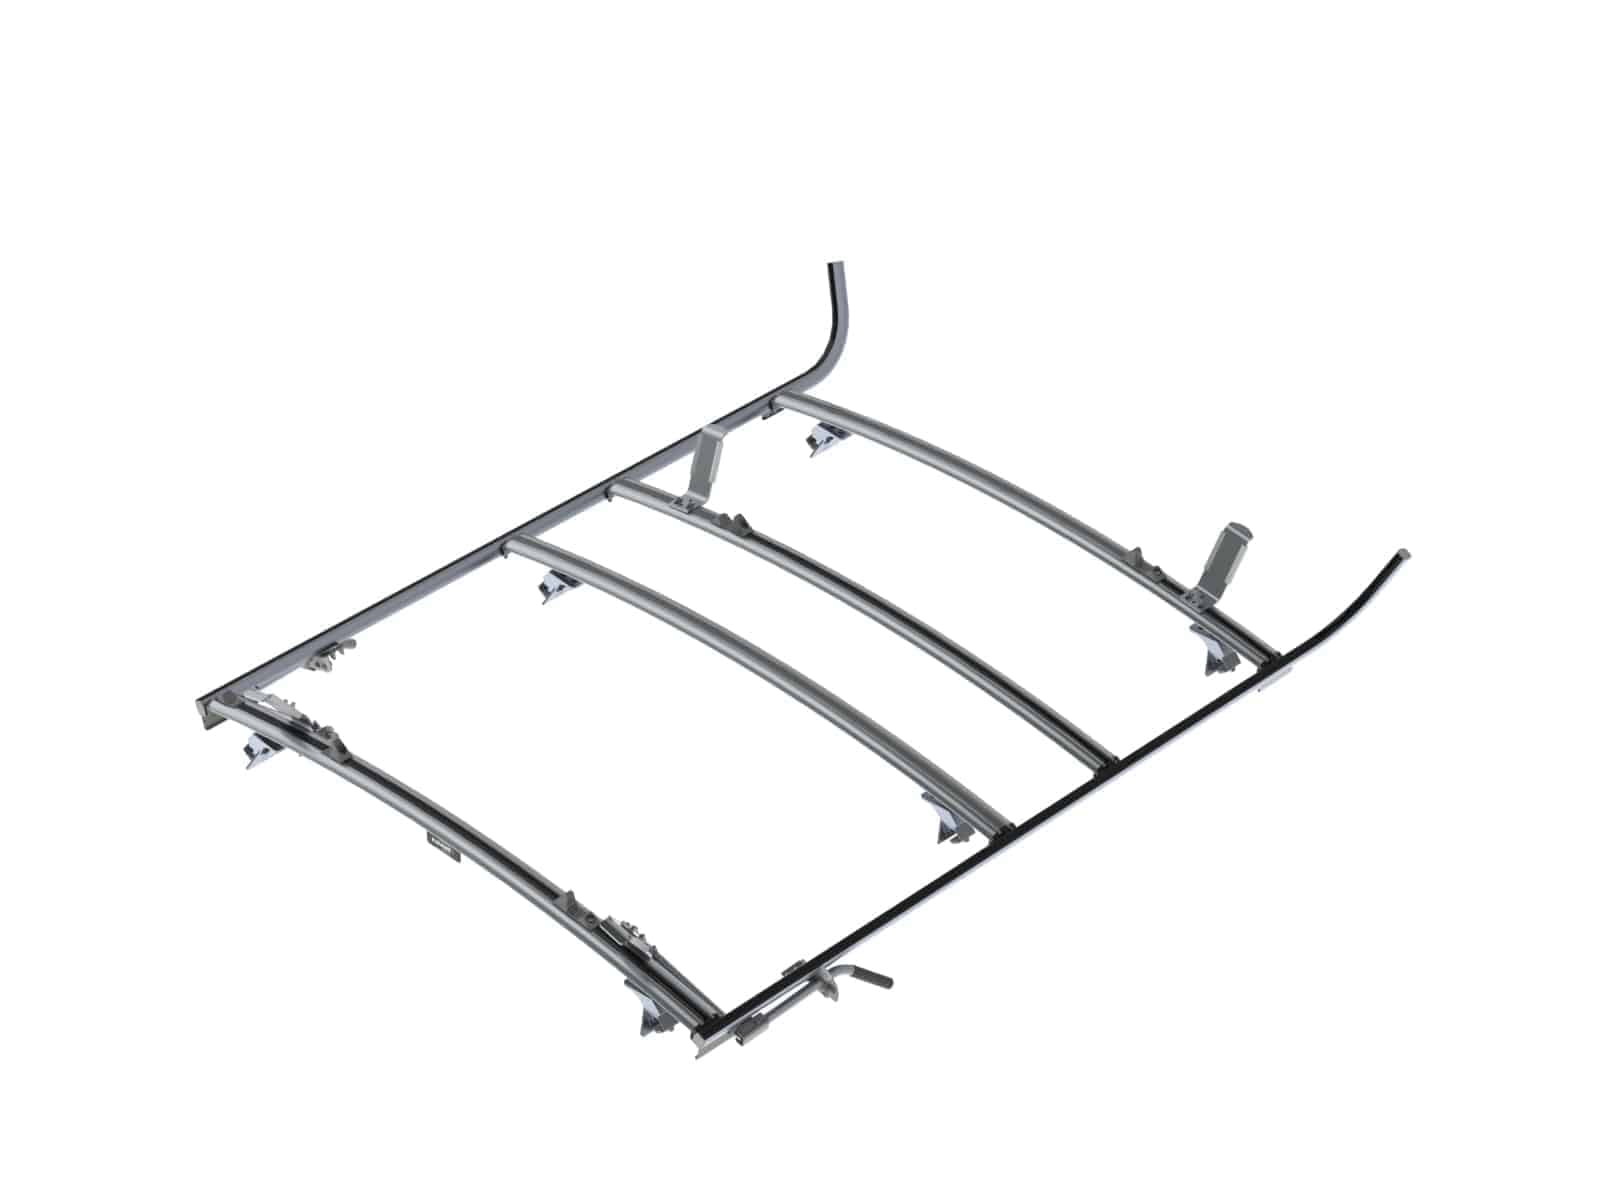 Combination Ranger Ladder Rack 3 Bar System Gm Savana